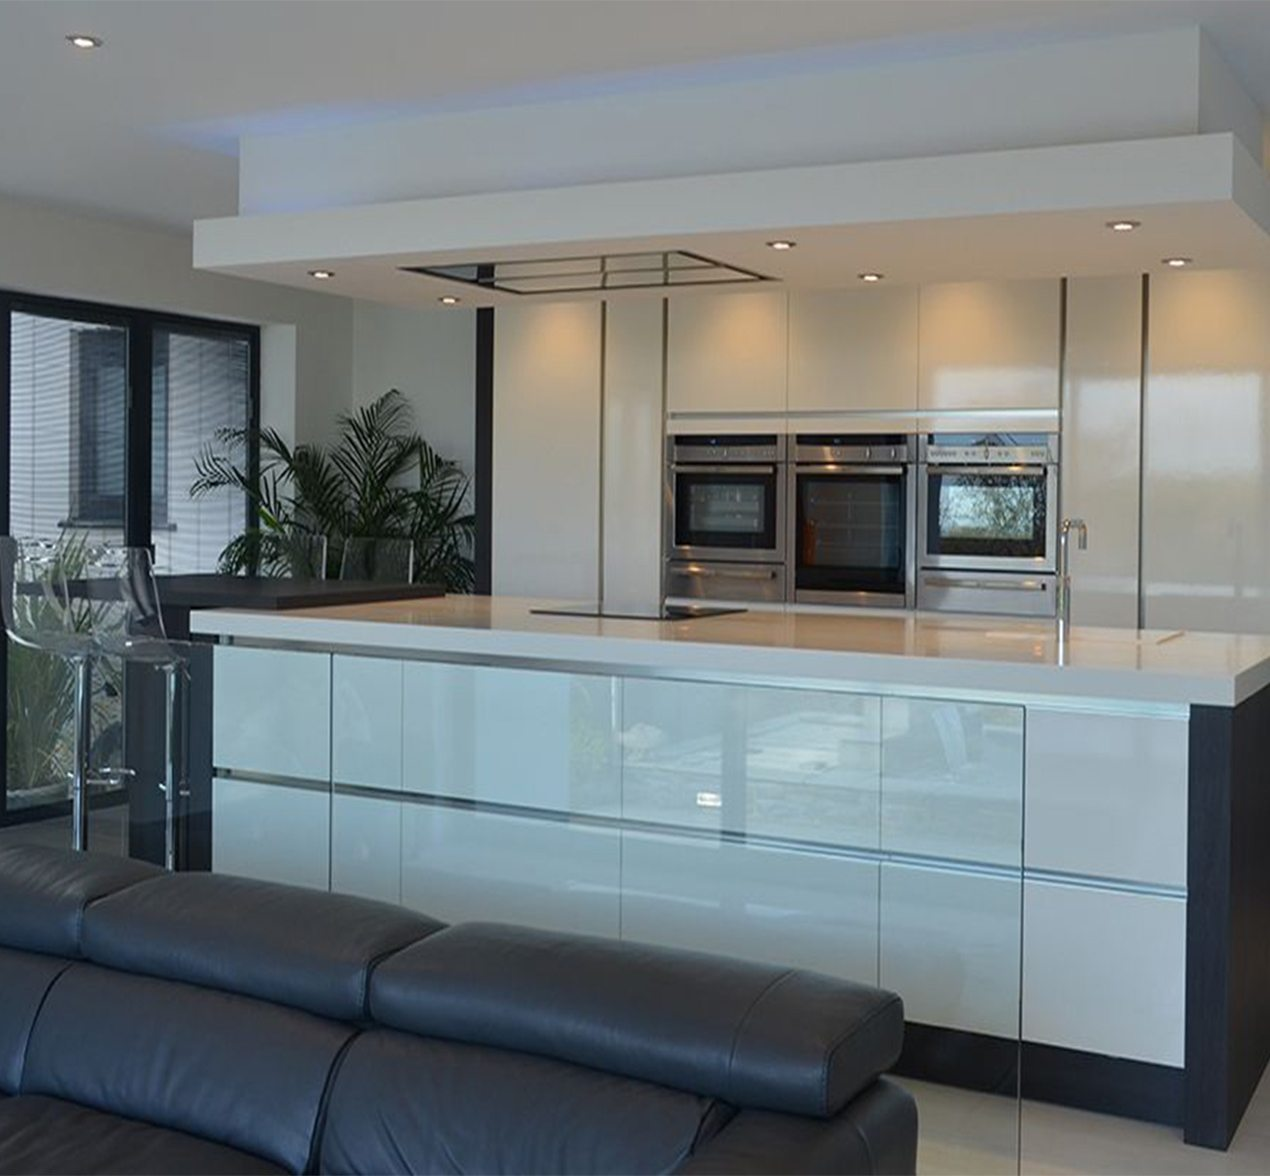 Small Designer Kitchen Ideas - Customer Kitchens - Kitchen Design Centre